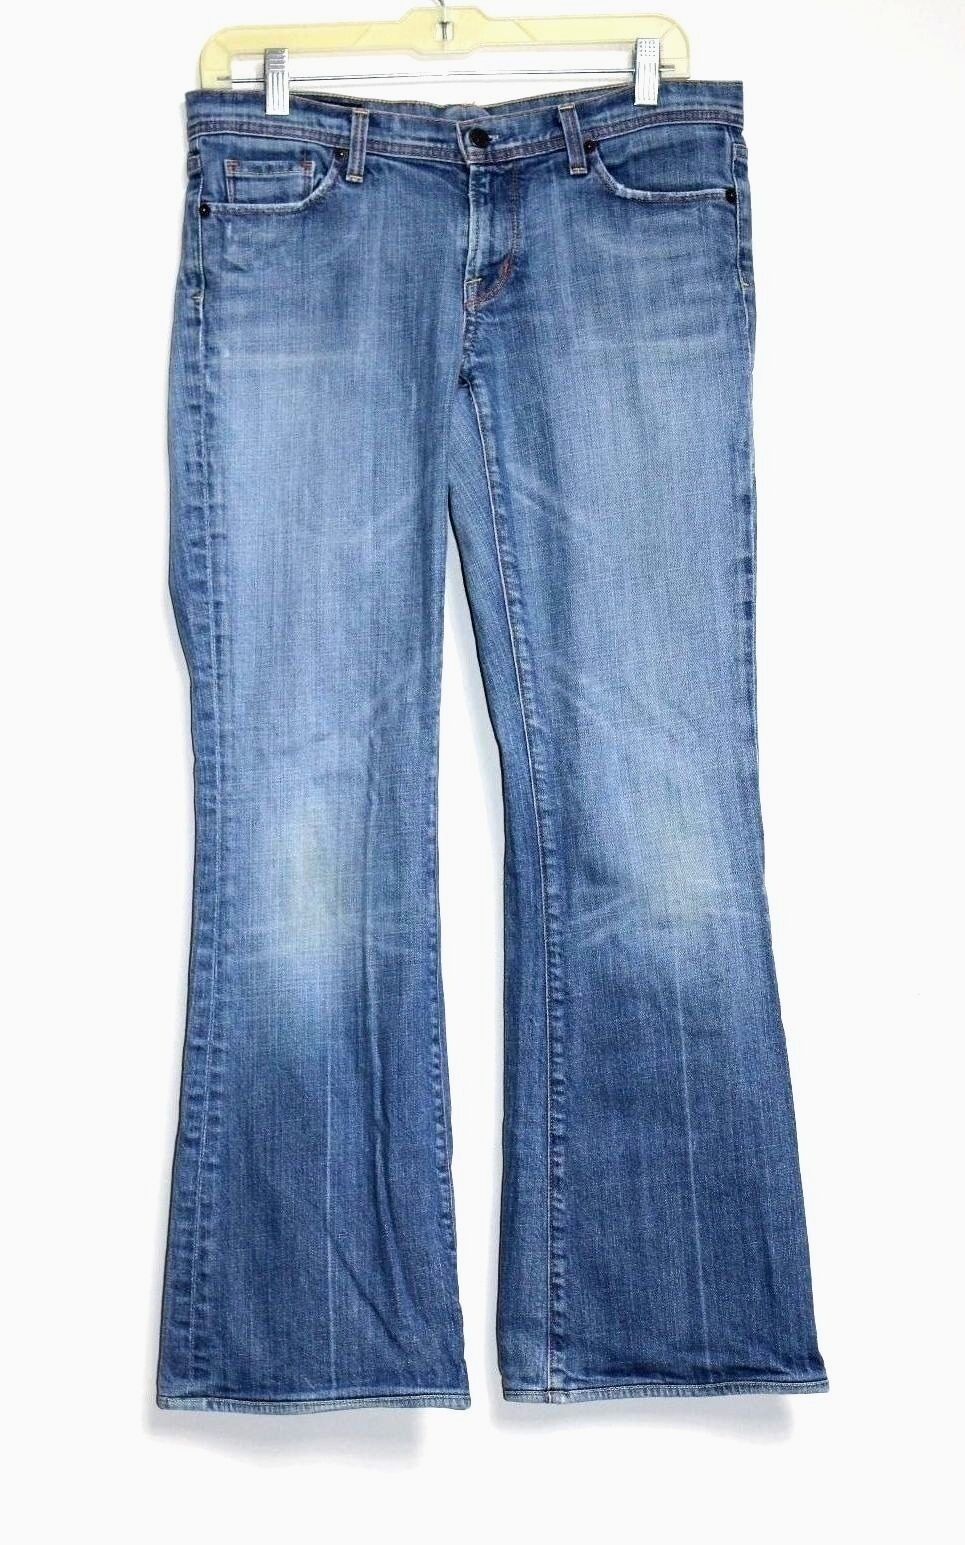 Citizens of Humanity - 30 32 - Medium-bluee Wash Denim Boot Cut Low-Rise Jeans